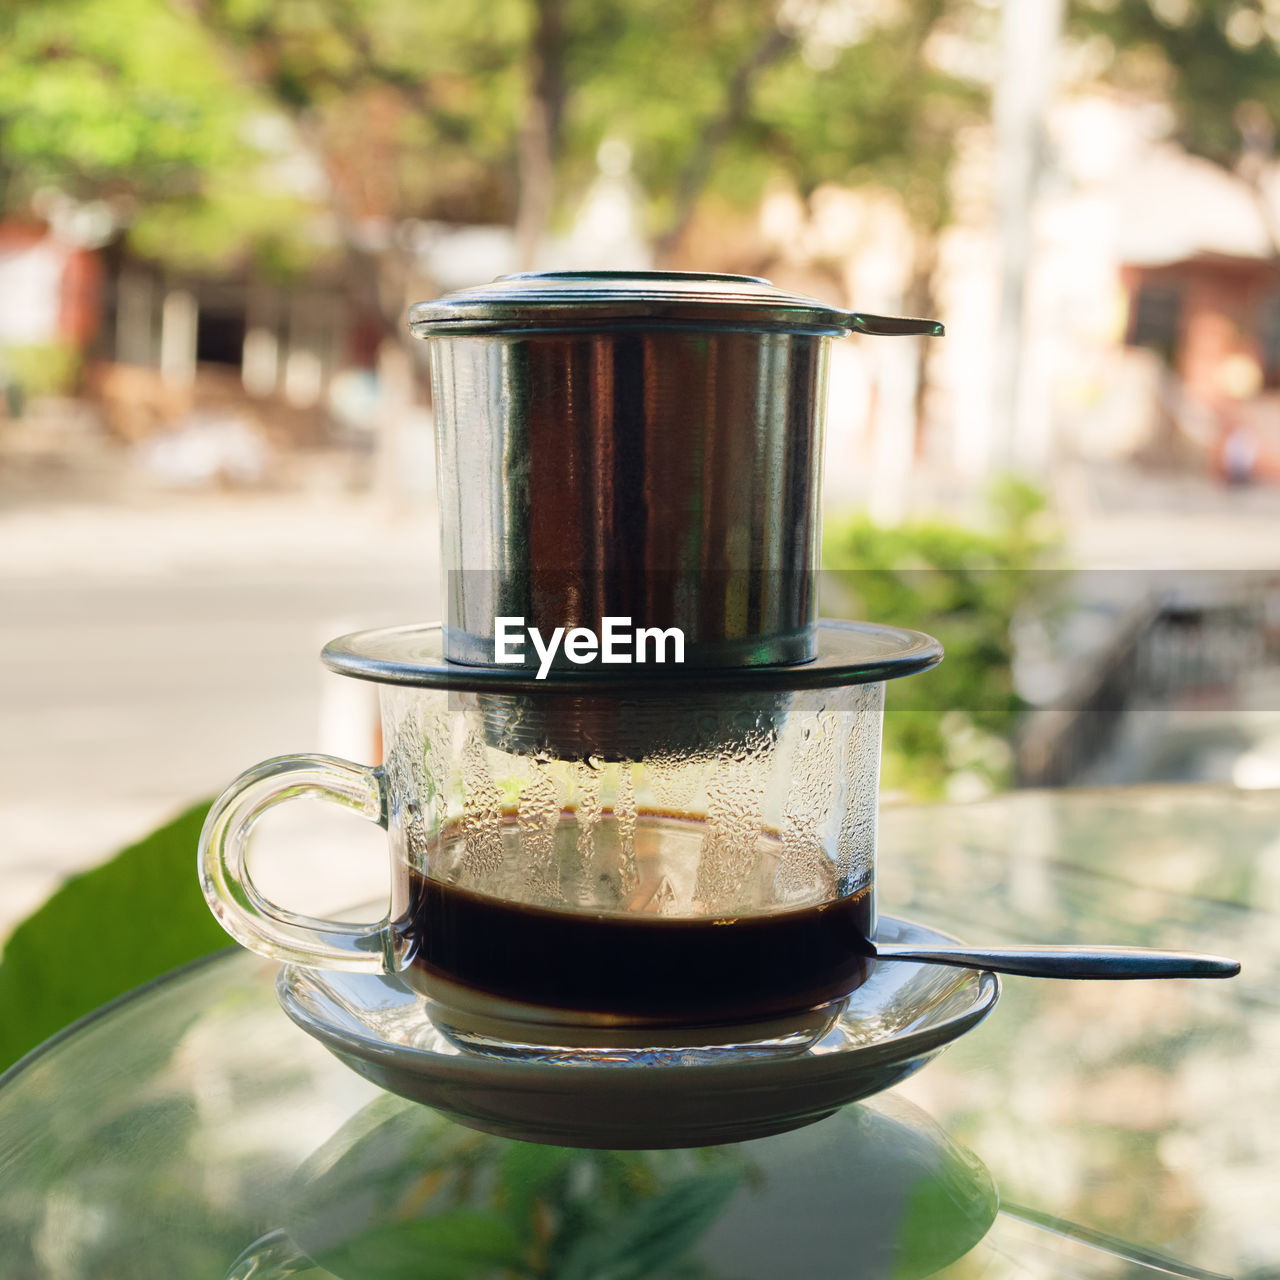 food and drink, drink, refreshment, focus on foreground, close-up, coffee, day, table, cup, coffee - drink, mug, household equipment, freshness, hot drink, glass, tea, kitchen utensil, drinking glass, still life, coffee cup, no people, outdoors, crockery, tea cup, steel